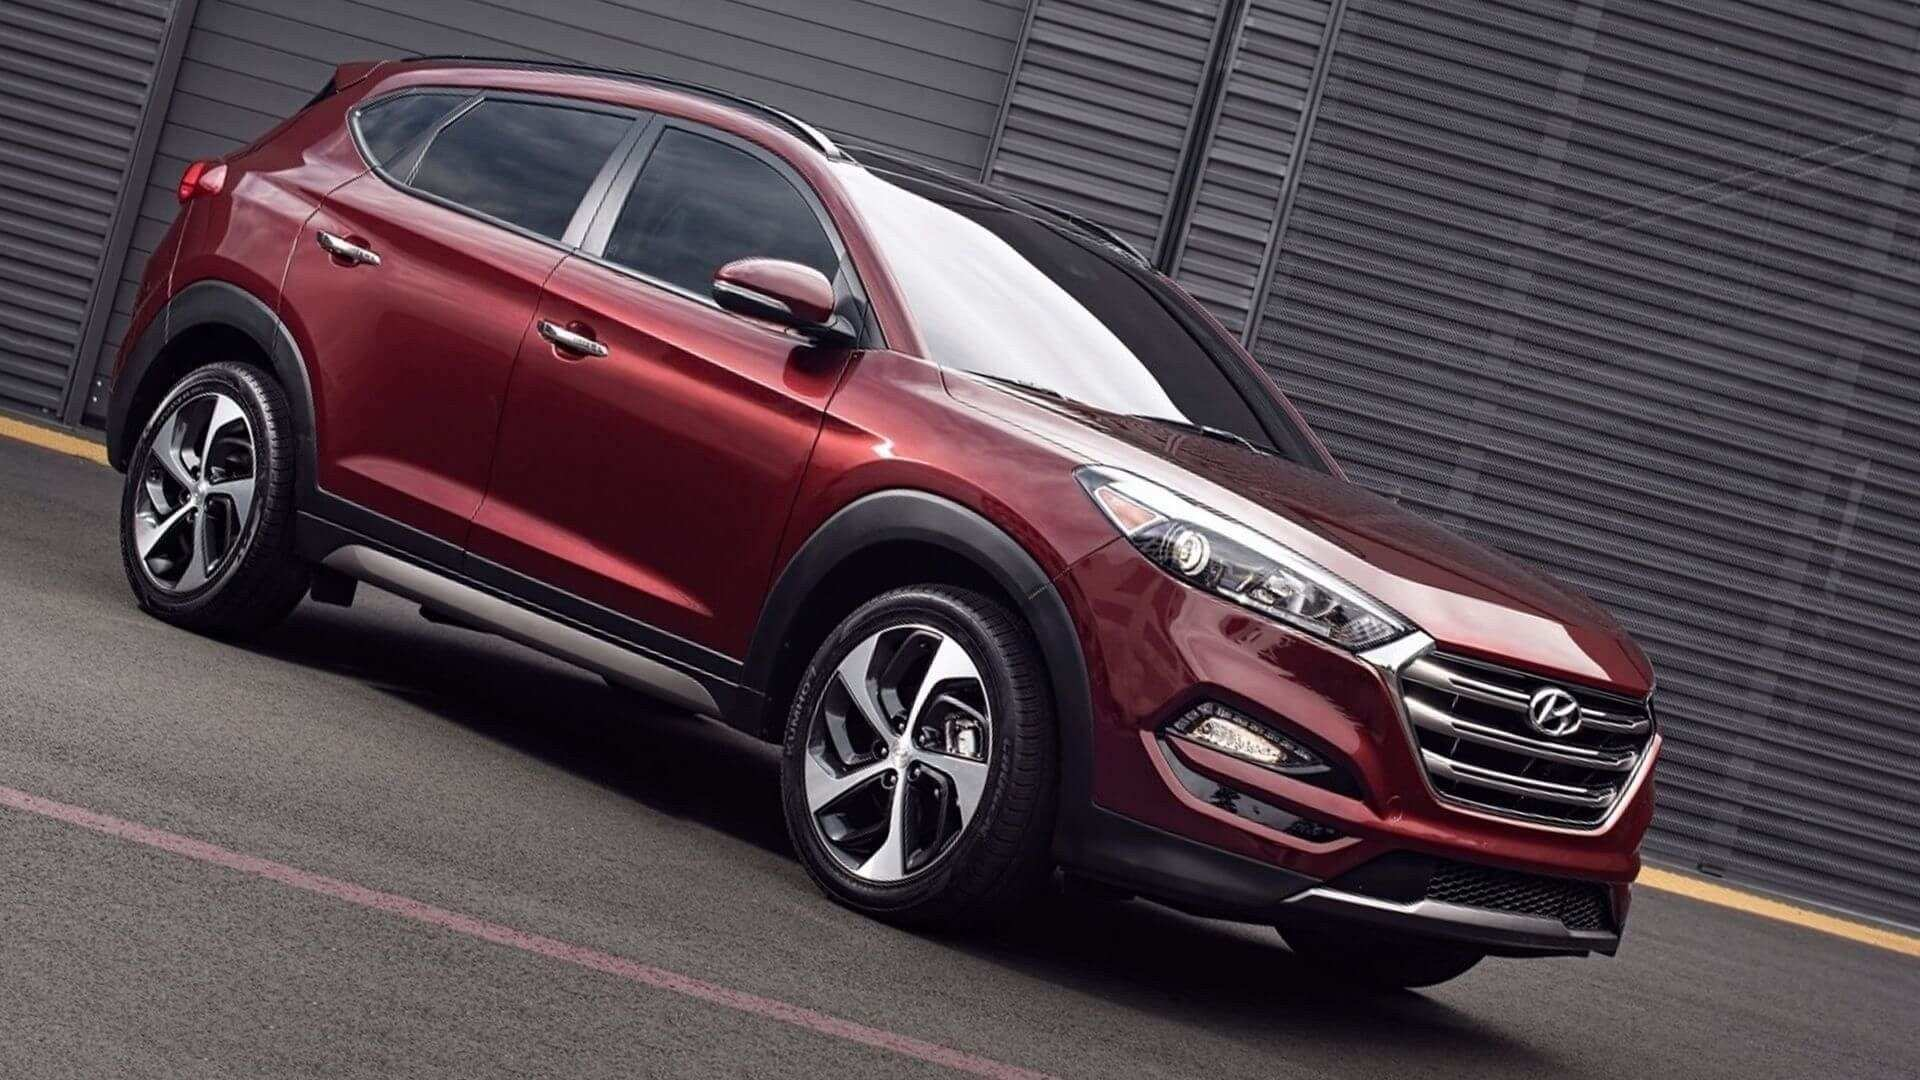 81 Best Review 2020 Hyundai Tucson Release Date for 2020 Hyundai Tucson